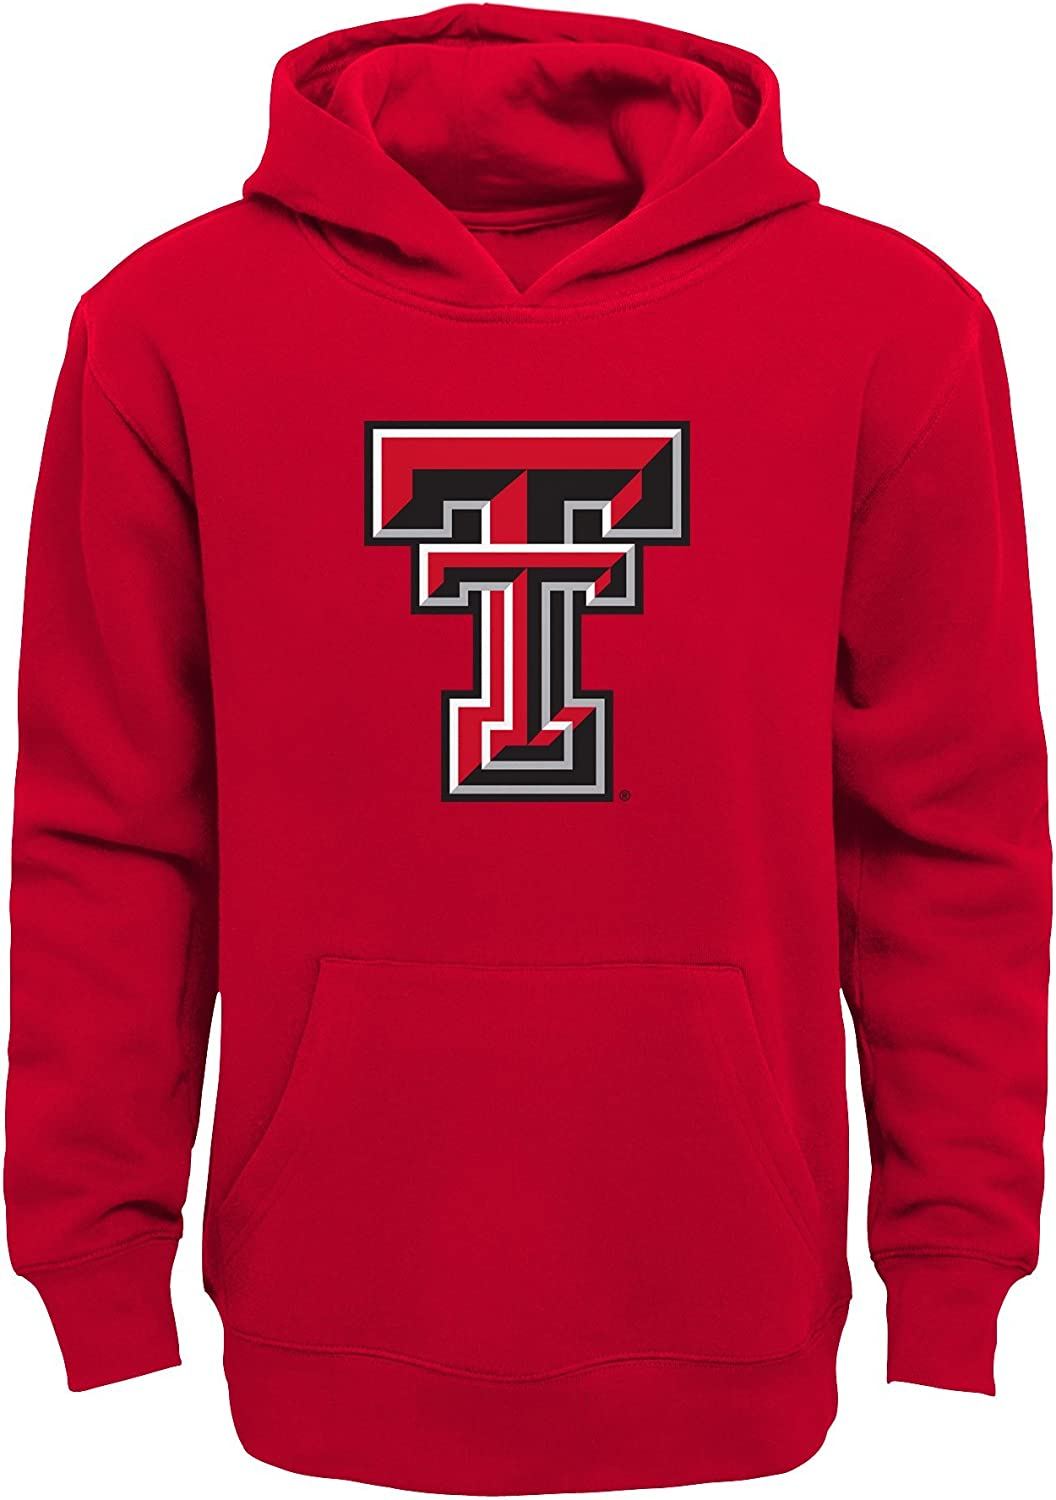 Kids Medium 5-6 Red NCAA by Outerstuff Boys Little NCAA Kids /& Youth Team Logo Pullover Hoodie